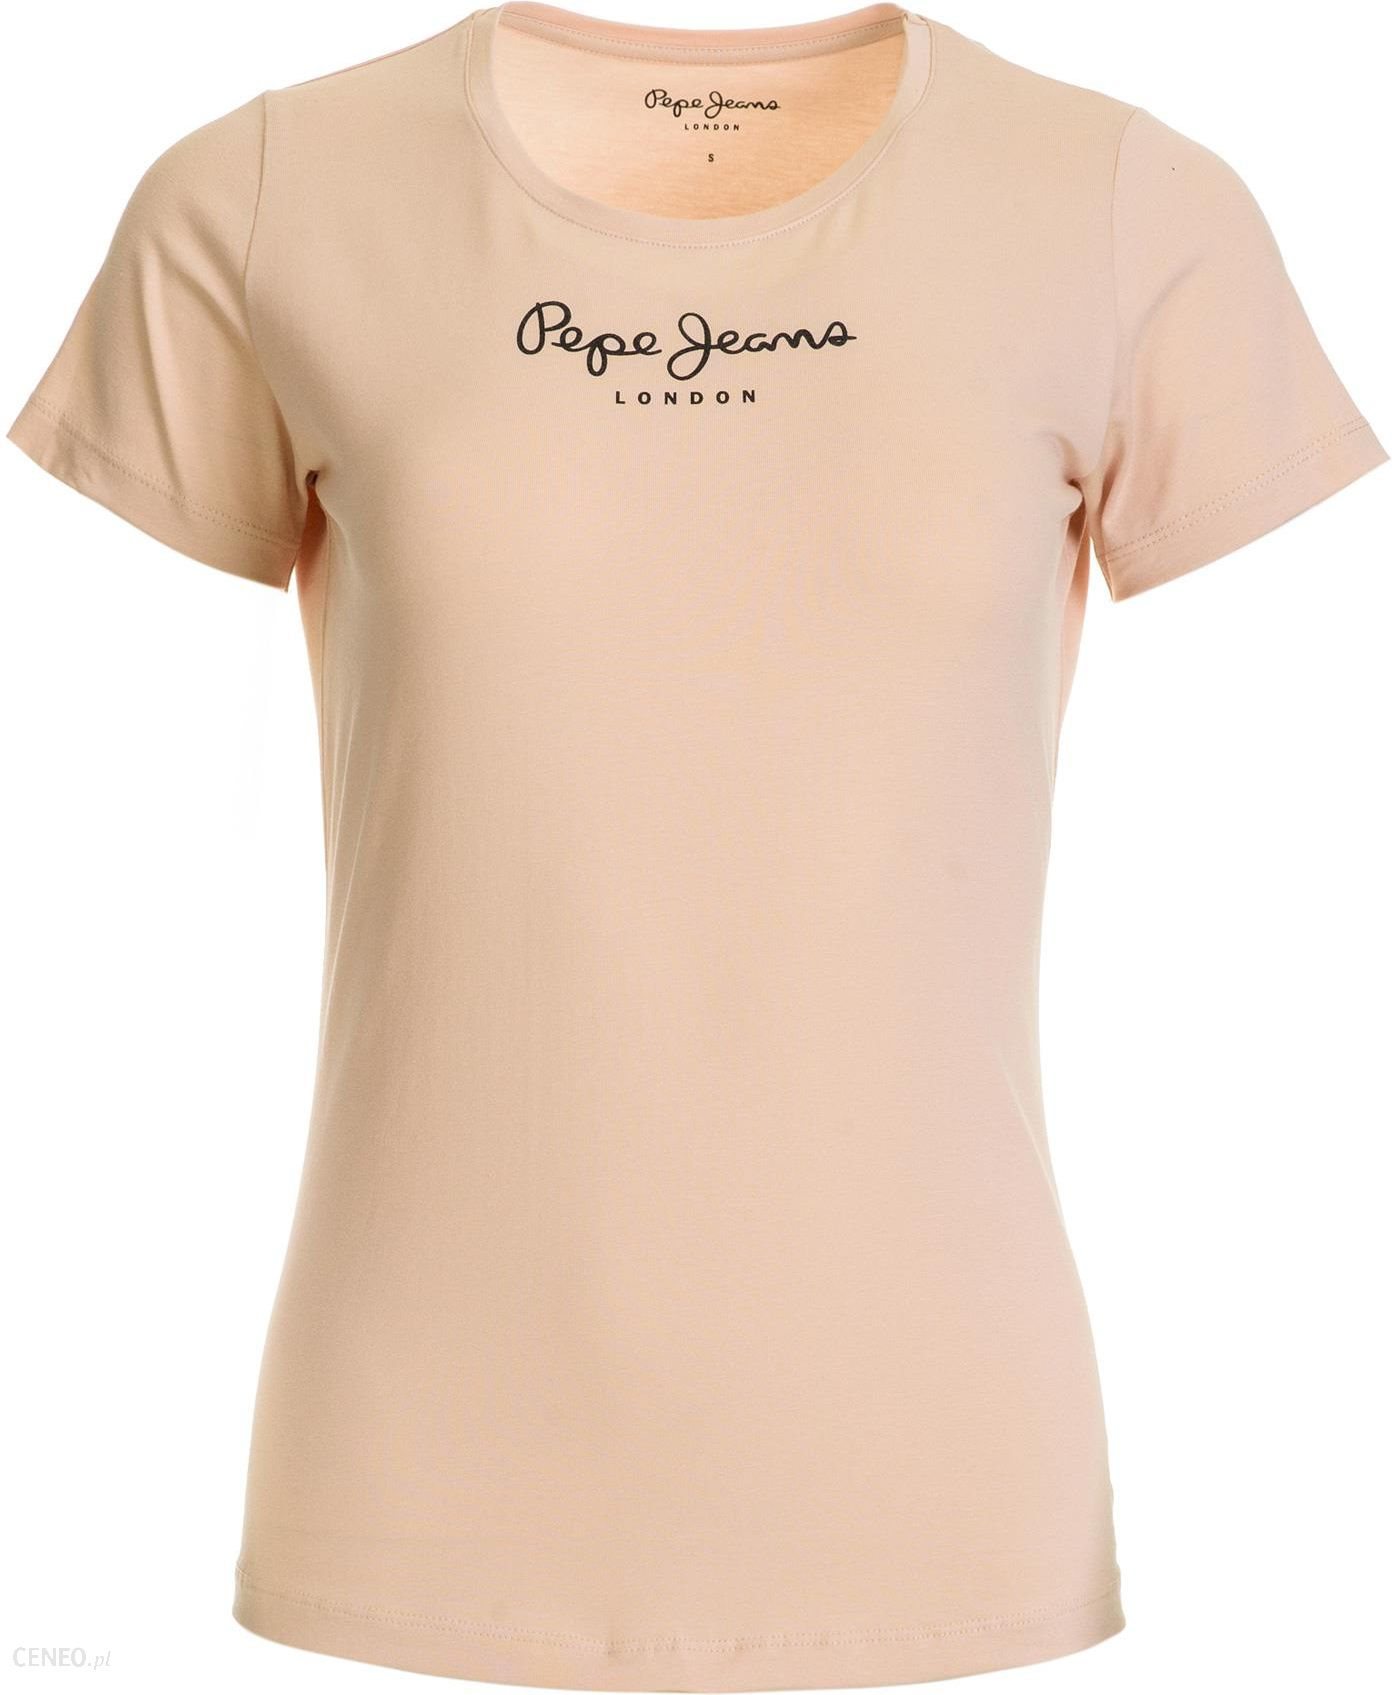 Topy Pepe Jeans na topie! Trendy T shirty Pepe Jeans ! Na